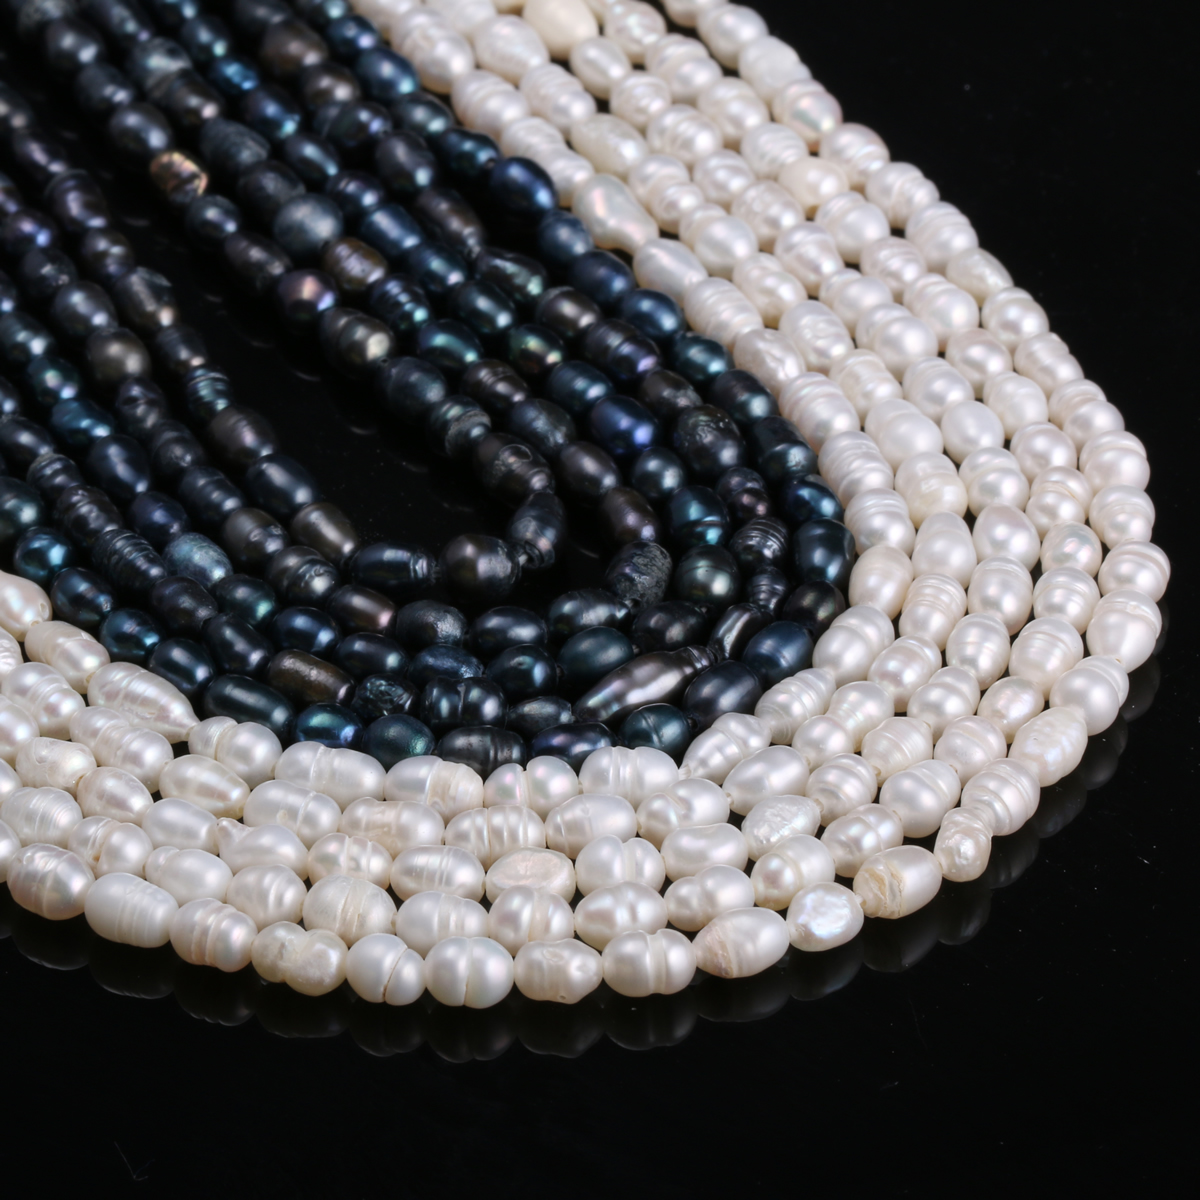 Natural Freshwater Cultured Pearls Beads Rice Shape 100% Natural Pearls for Jewelry Making DIY Strand 13 Inches Size 5-6mm(China)